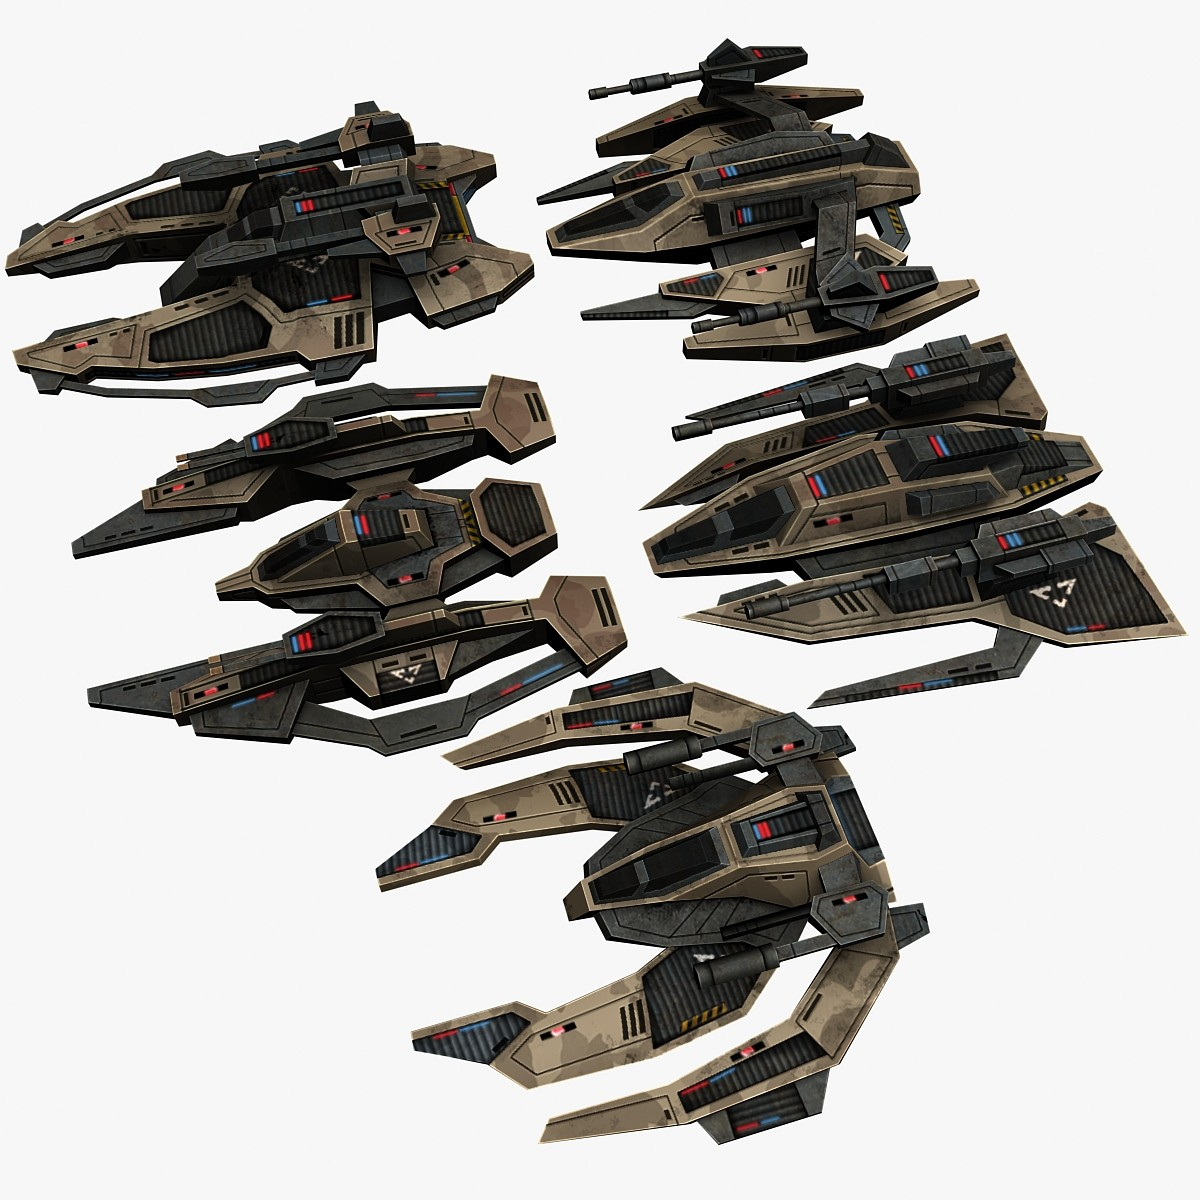 5_military_space_fighters.jpg